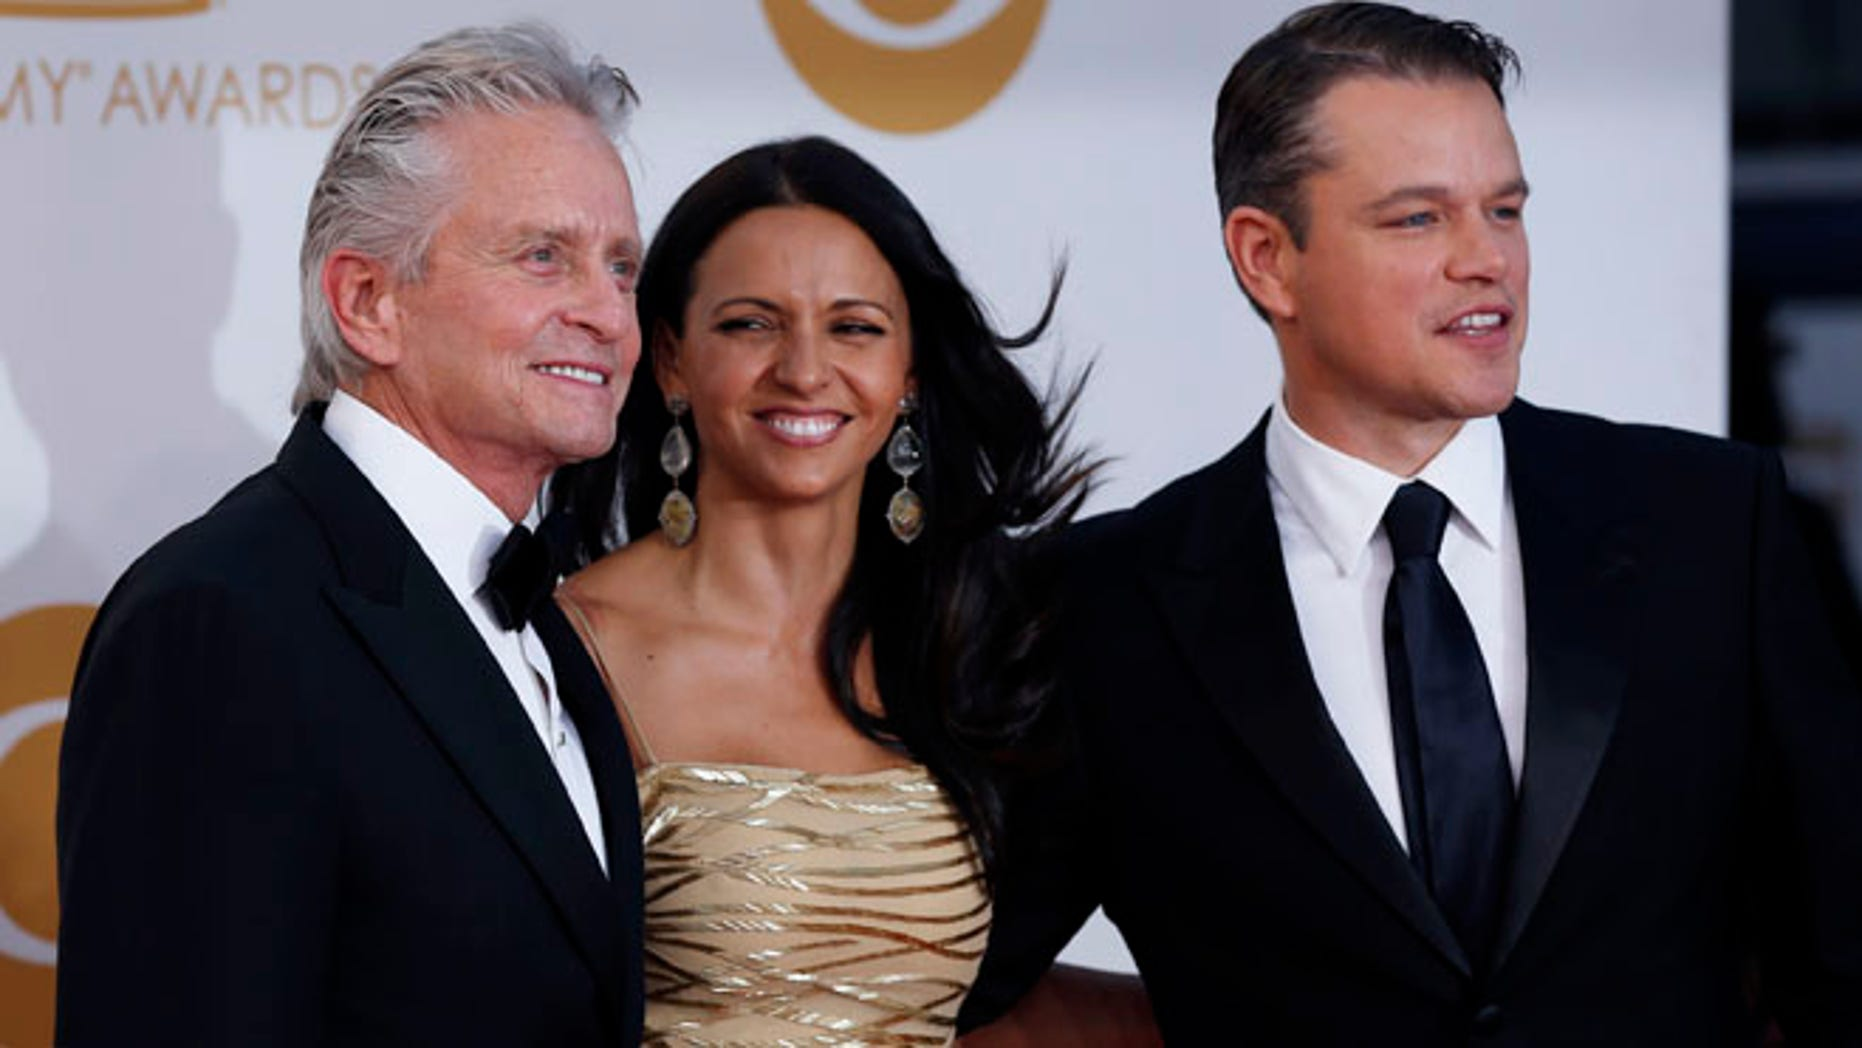 """Actor Michael Douglas from HBO's movie """"Behind the Candelabra"""" arrives with co-star Matt Damon and his wife, Luciana Barroso, at the 65th Primetime Emmy Awards in Los Angeles September 22, 2013. REUTERS/Mario Anzuoni (UNITED STATES Tags: ENTERTAINMENT) (EMMYS-ARRIVALS) - RTX13VT2"""